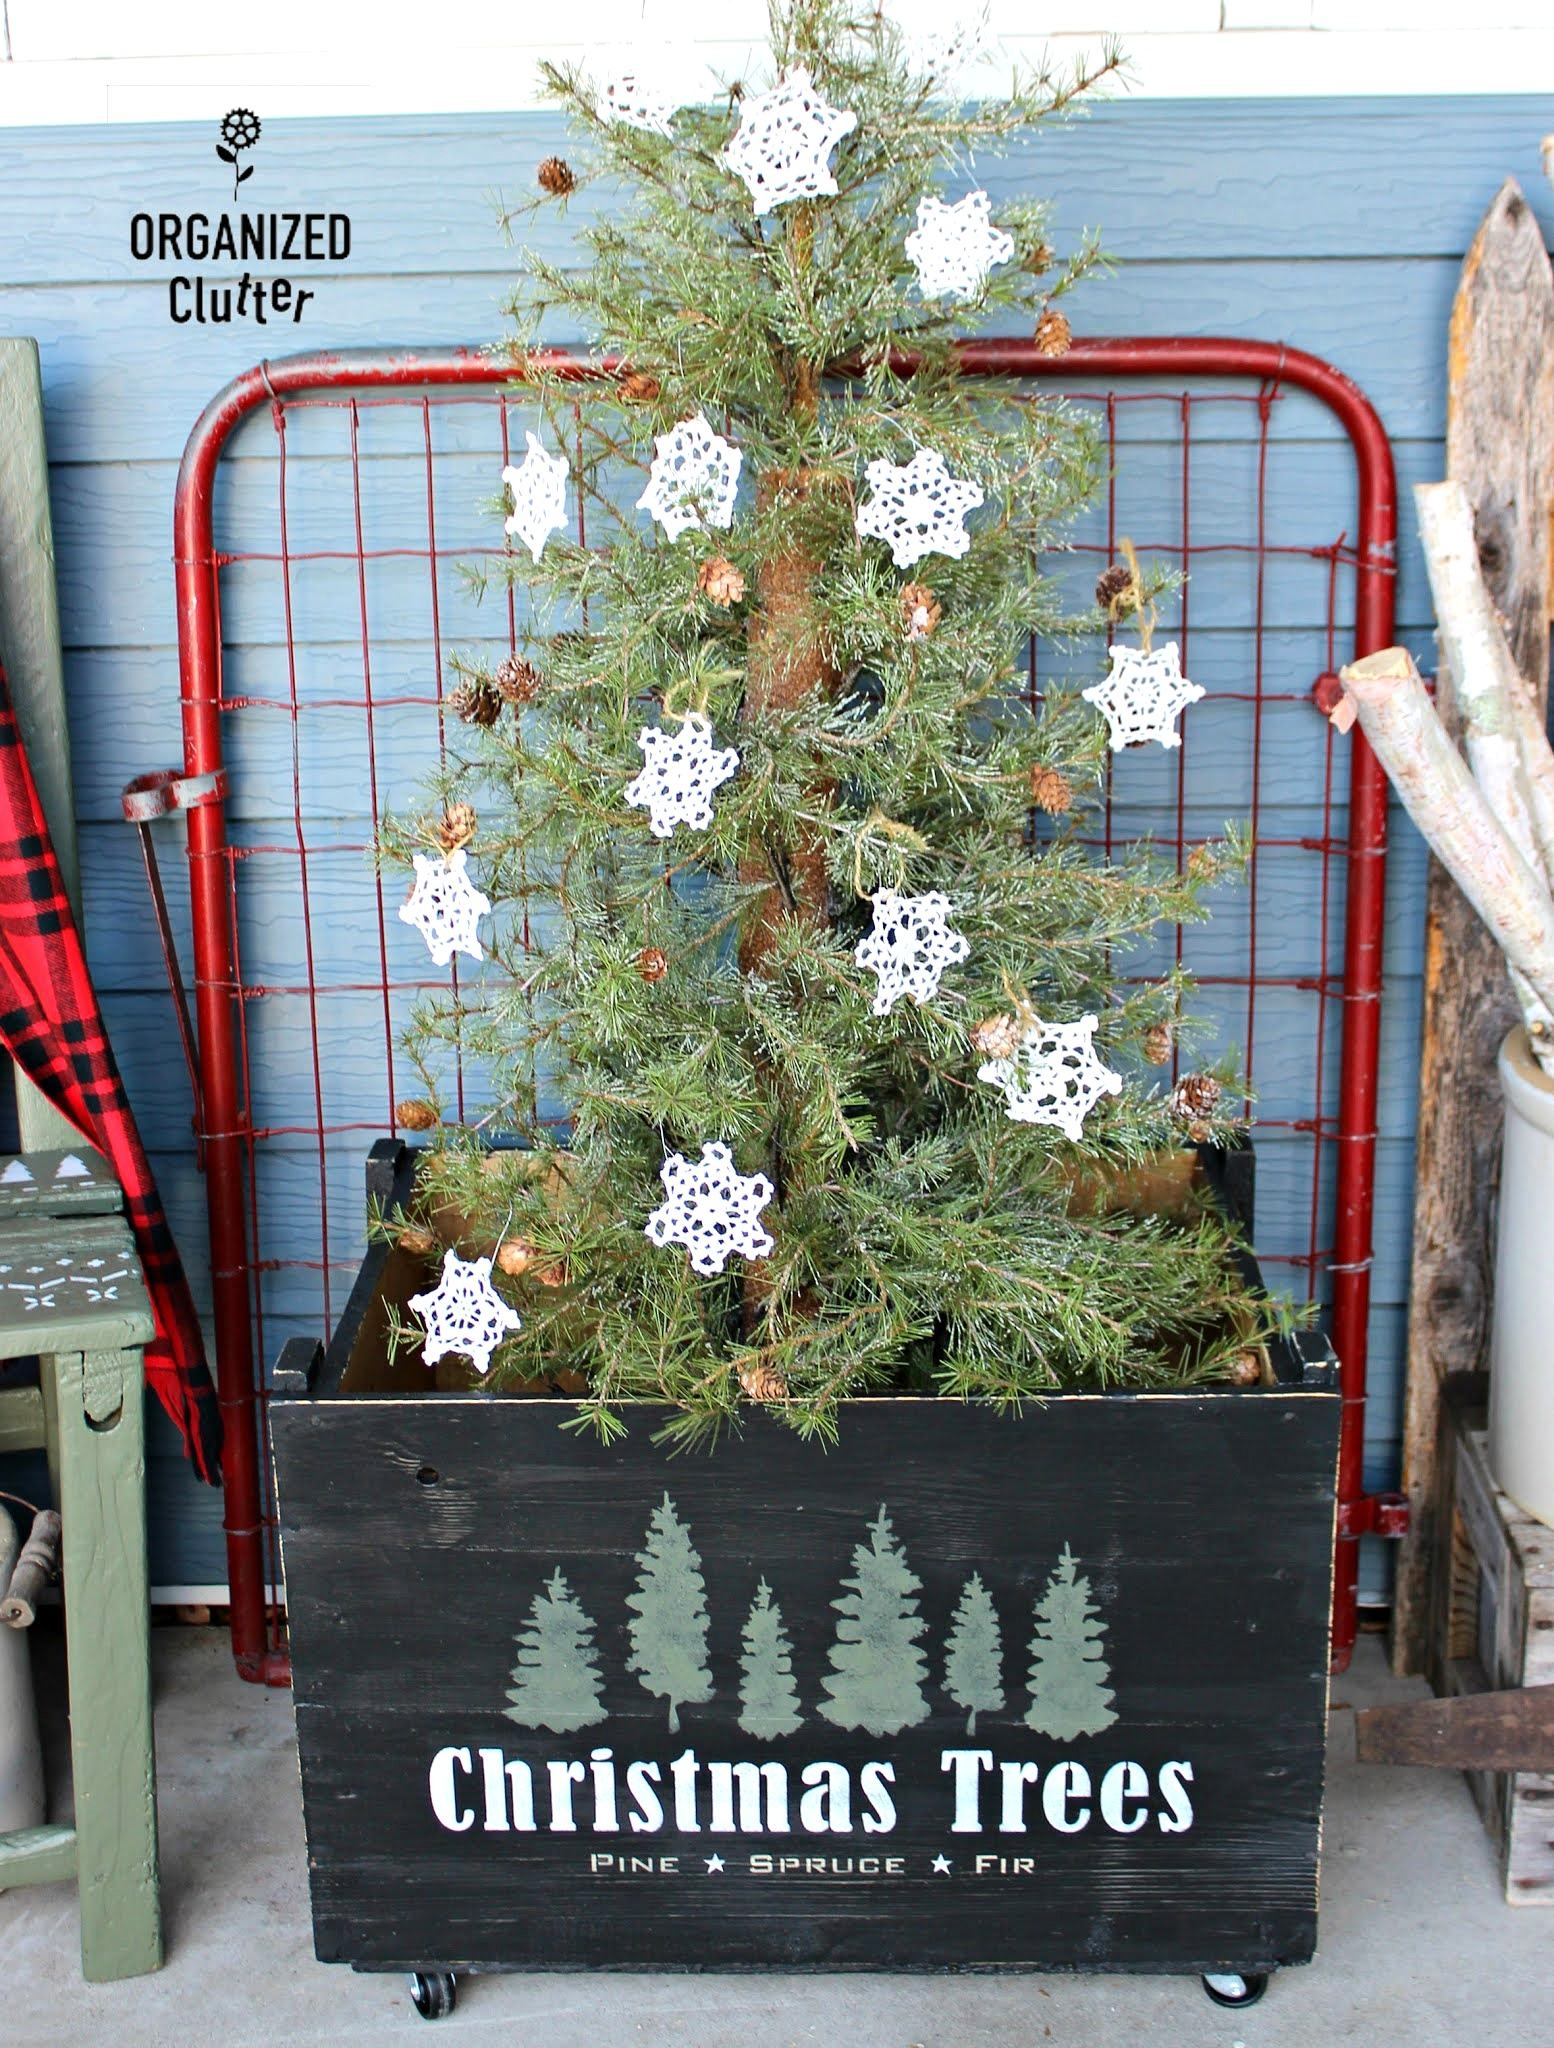 Christmas Trees crate skirt by Organized Clutter, featured in DIY Salvaged Junk Projects 557 on Funky Junk!